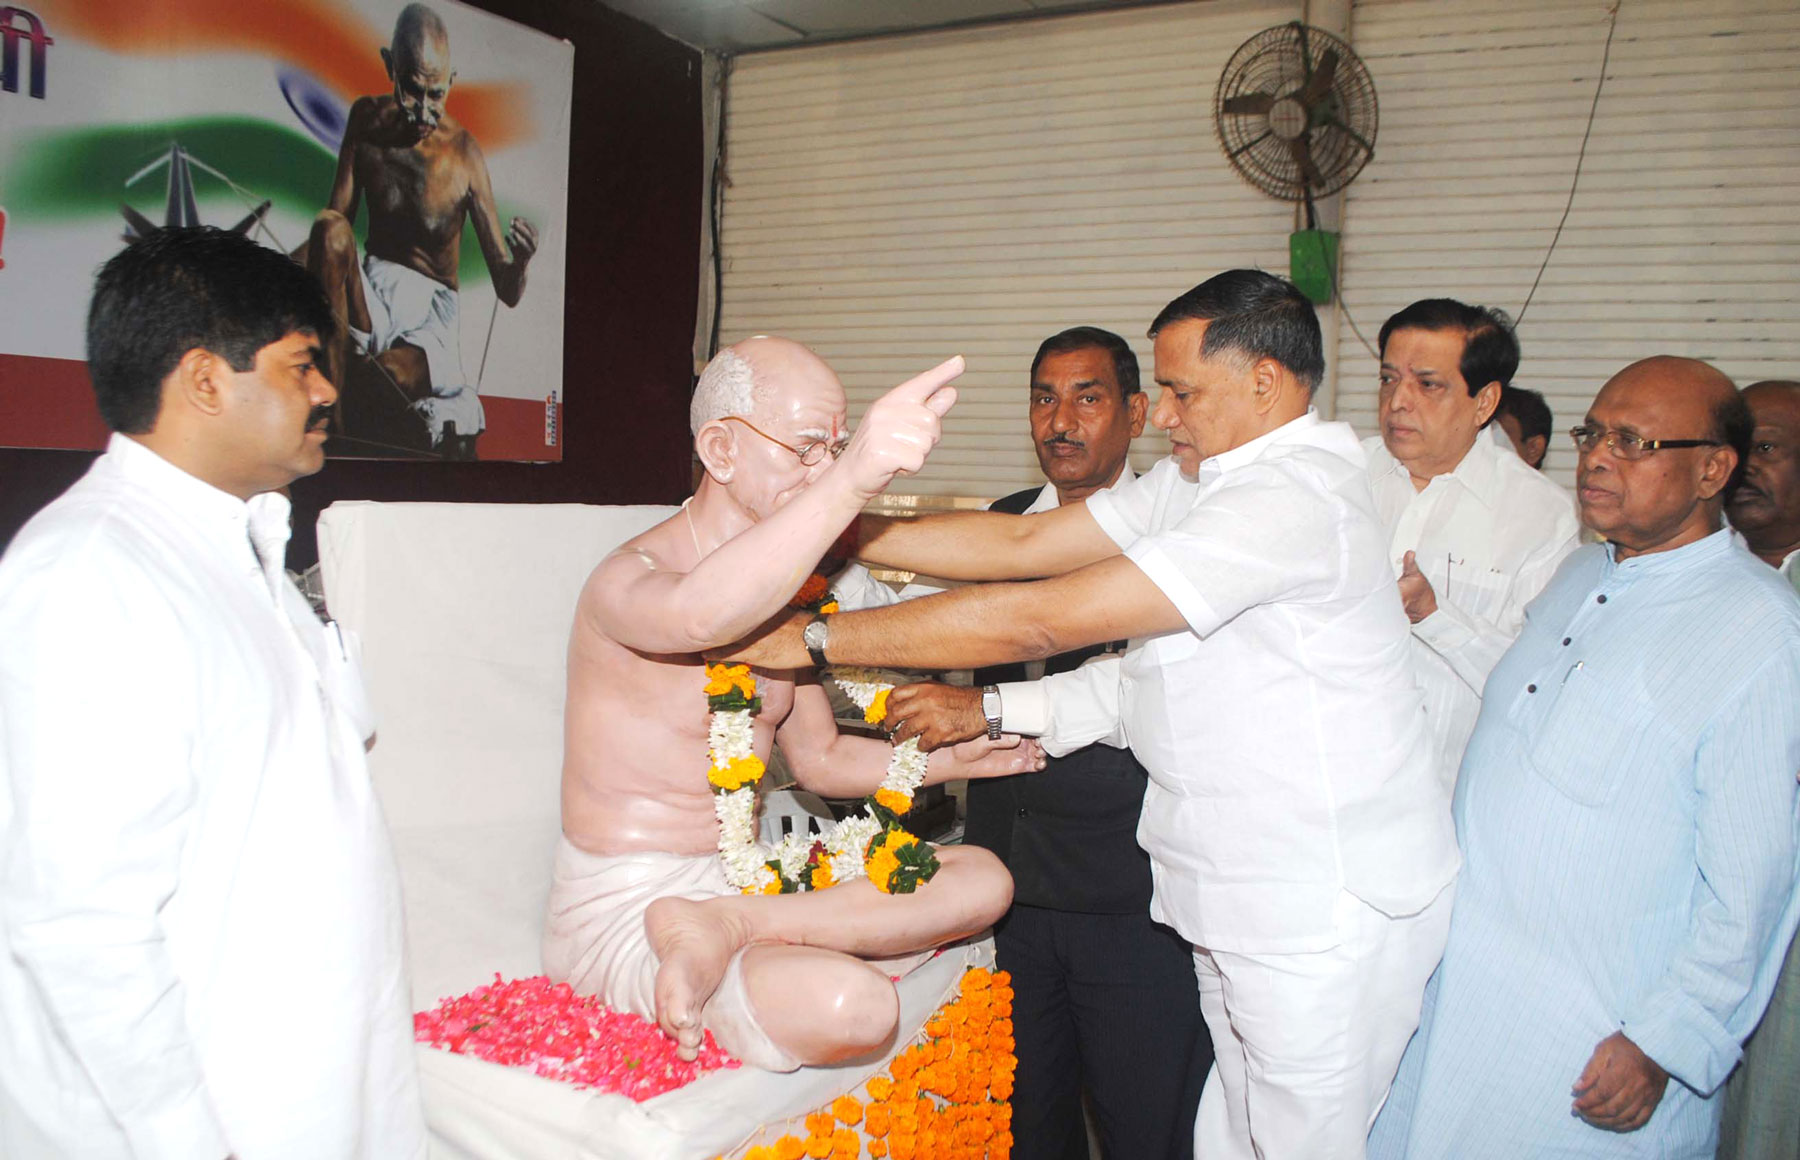 MUMBAI CONGRESS PRESIDENT KRIPASHANKAR SINGH PAYING TRIBUTE TO FATHER OF NATION MAHATMA GANDHI ON HIS DEATH ANNIVERSARY.